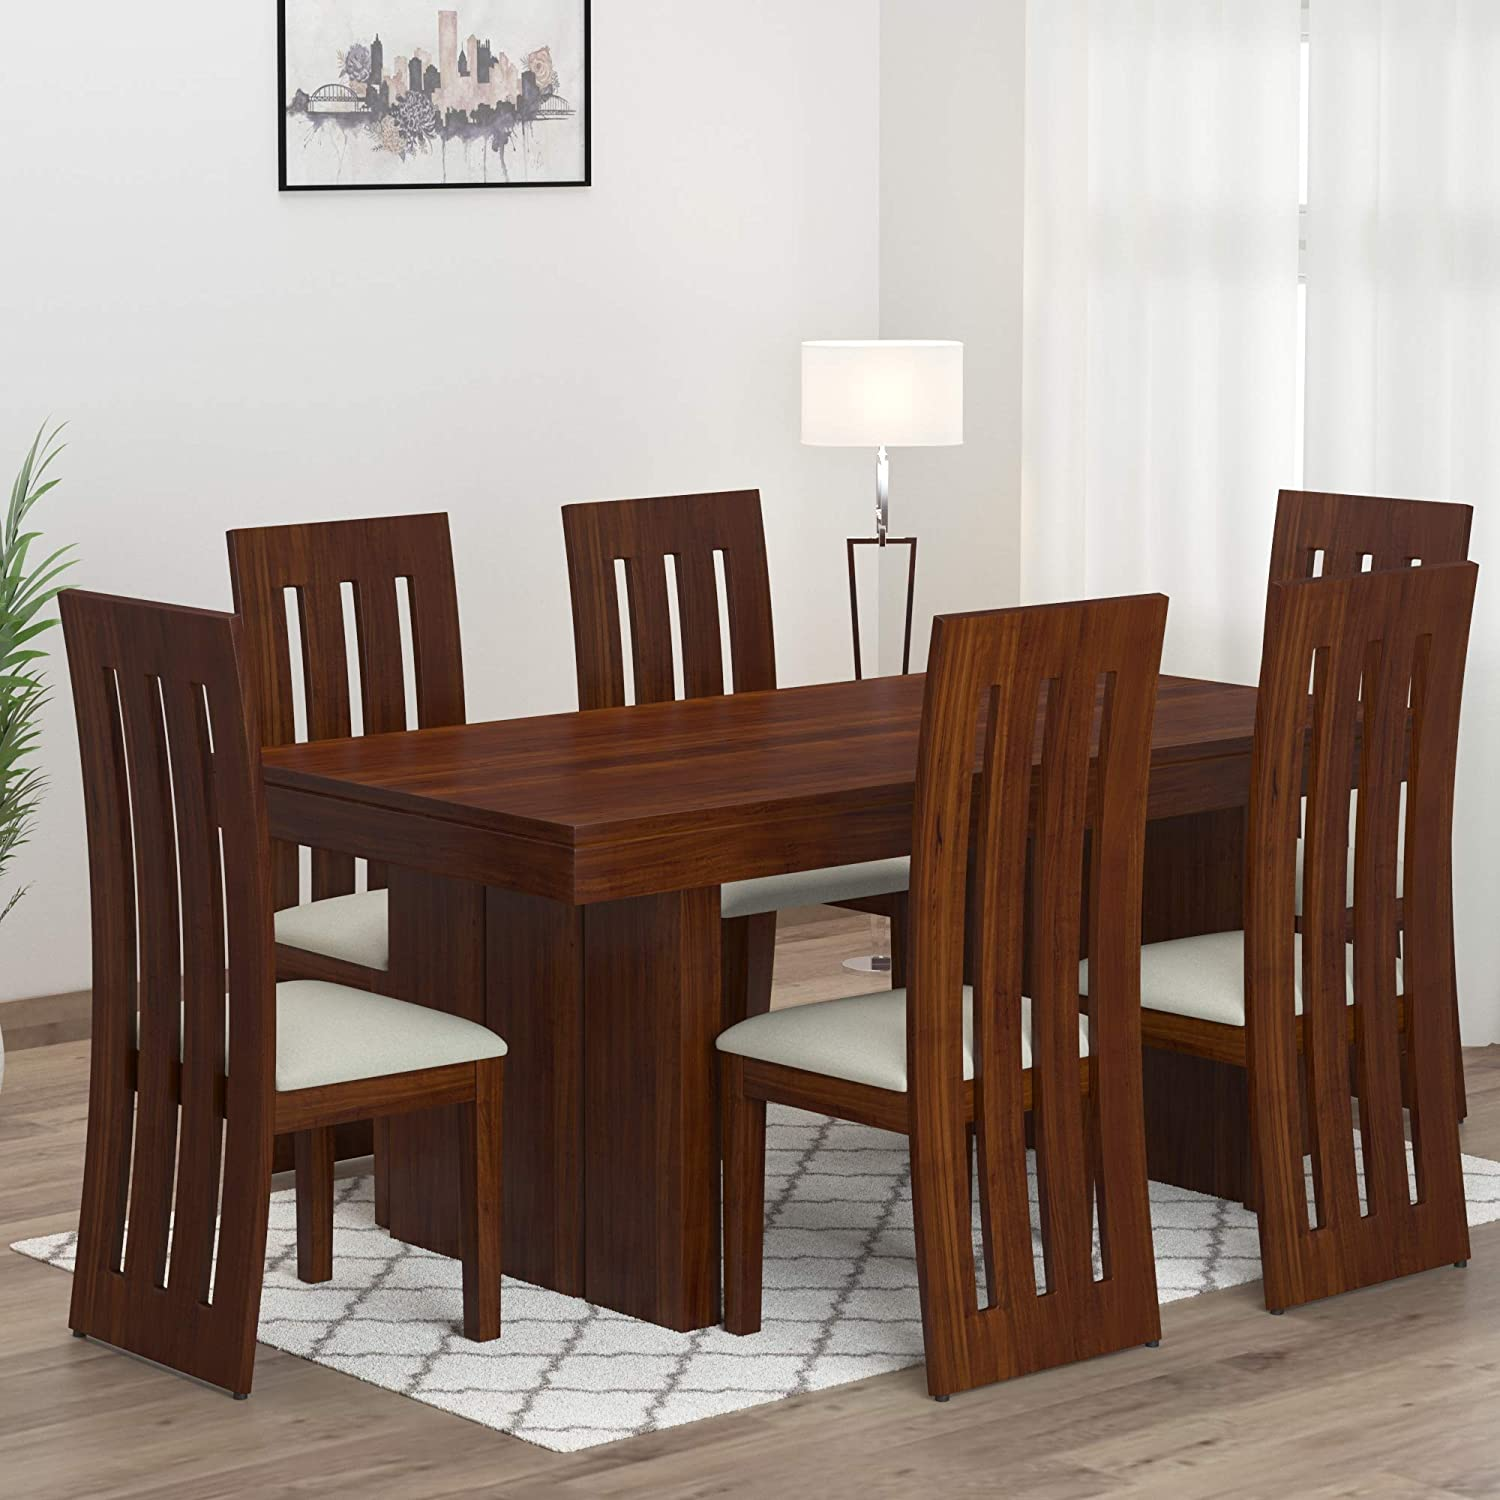 Mamta Decoration Sheesham Wood Dining Table Set with 9 Chair for Living  Room Teak Finish